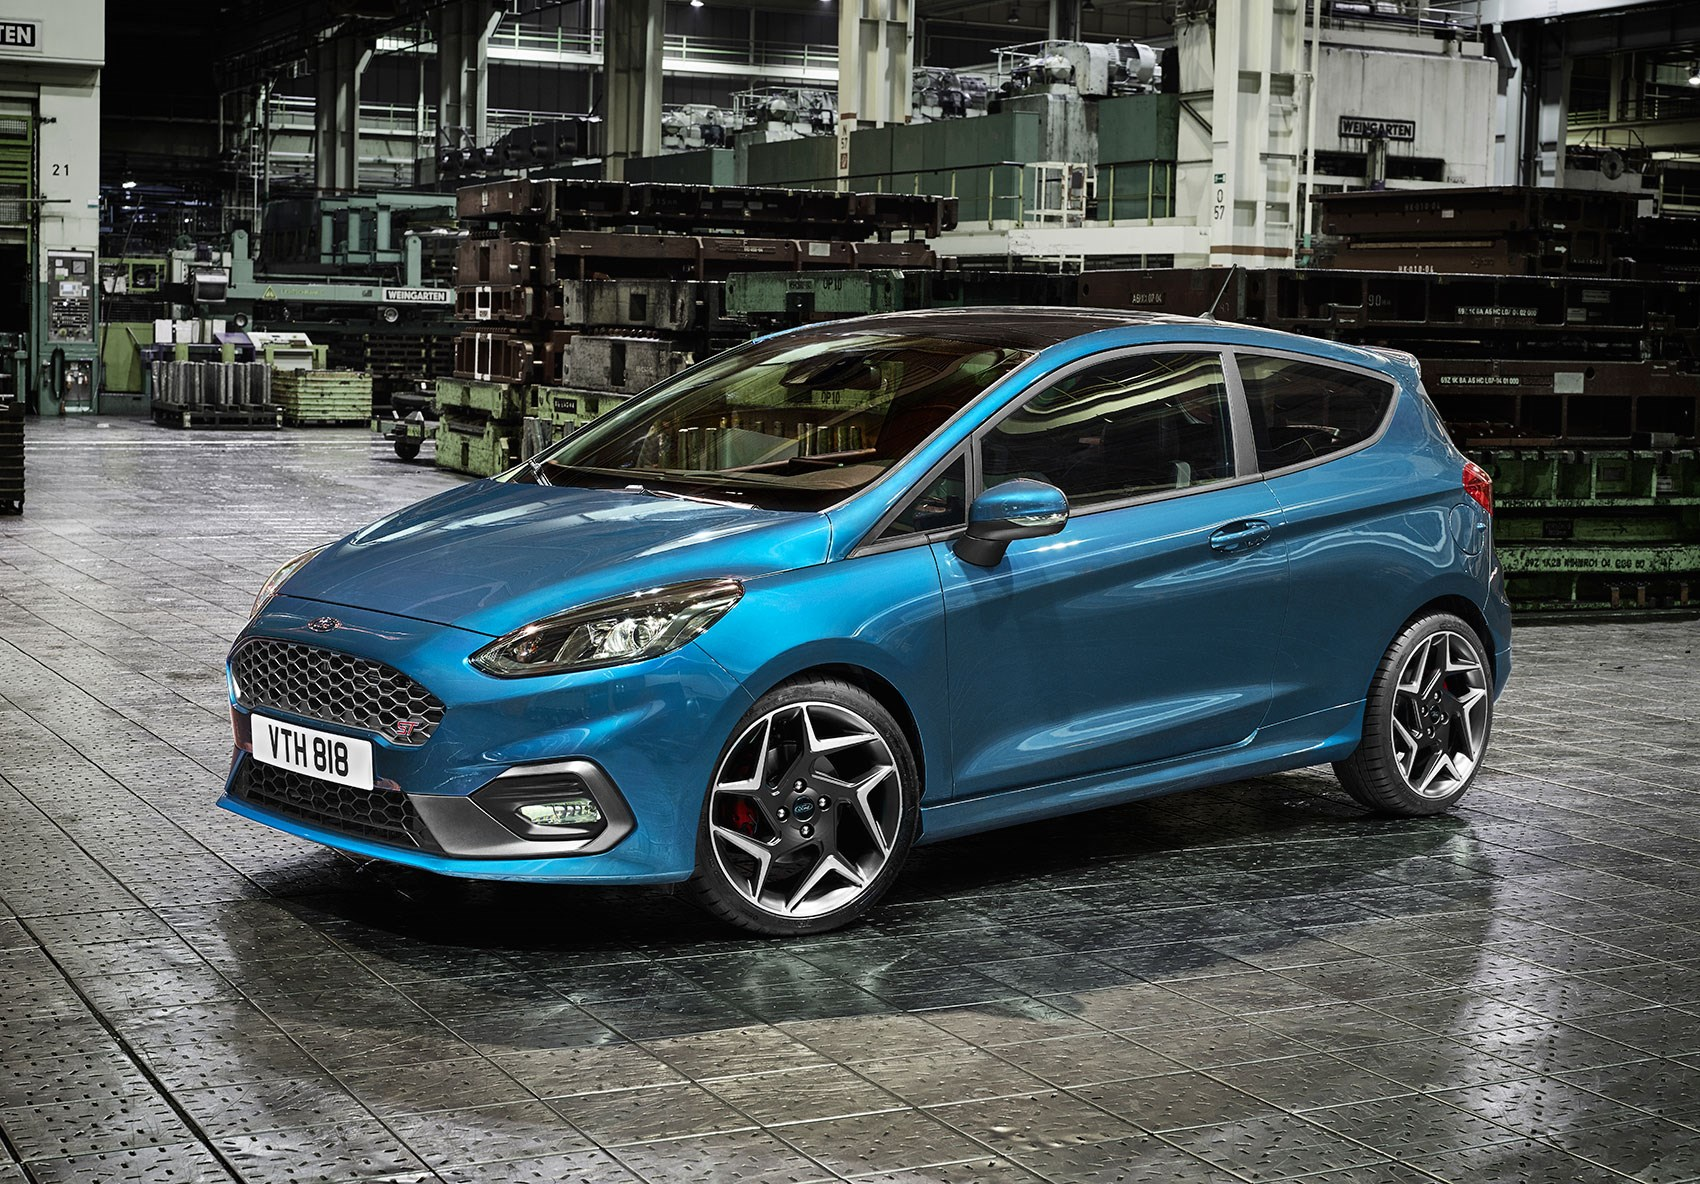 Ford announces new Fiesta ST hot hatch ahead of Geneva Motor Show